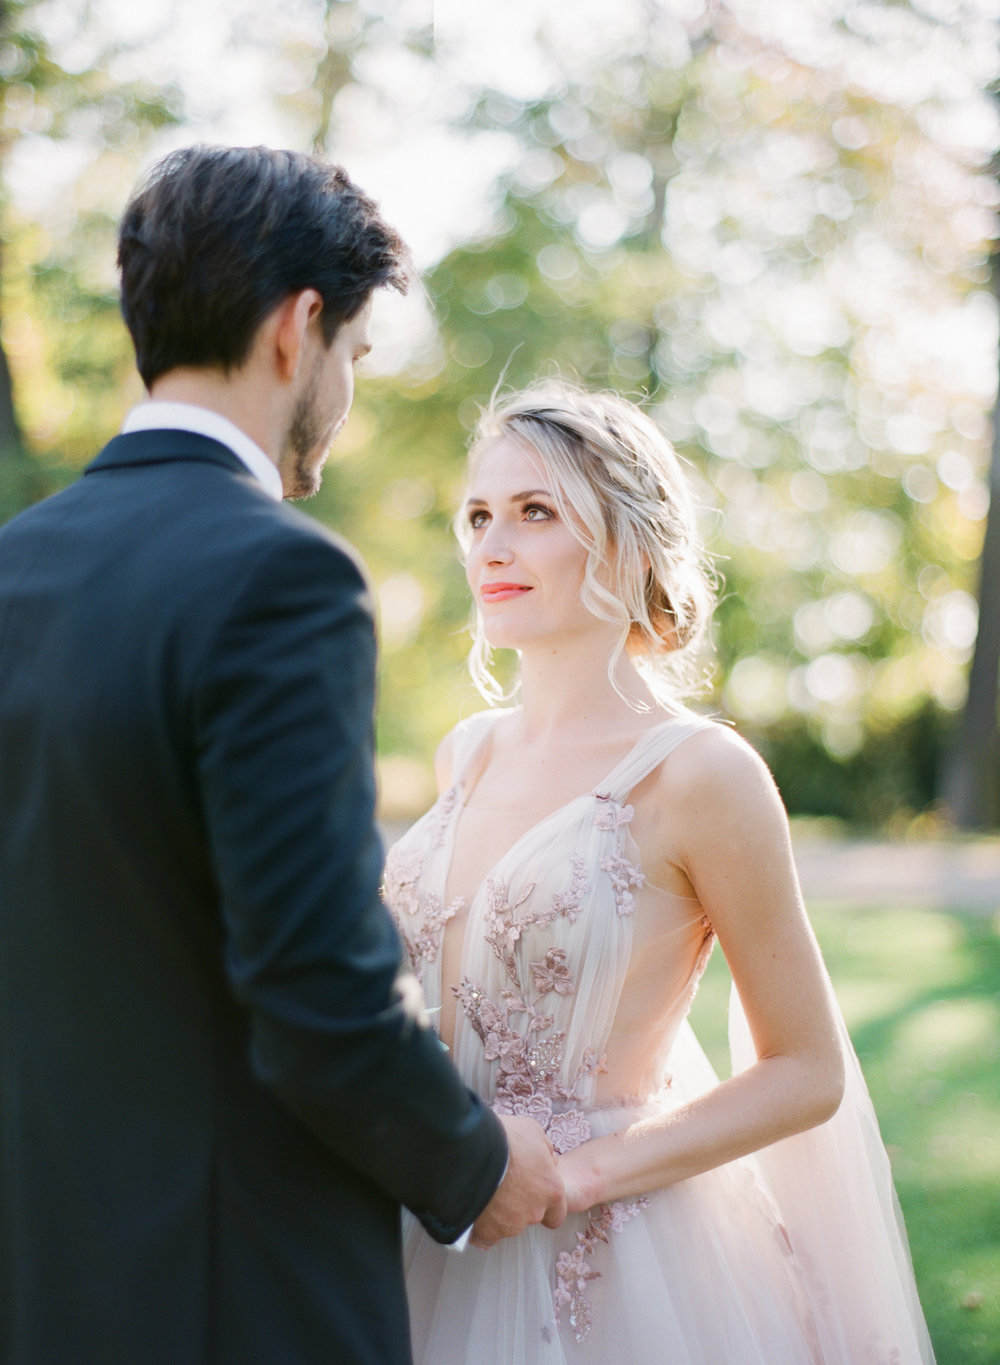 prague wedding photographer chateau mcely film wedding photographer nikol bodnarova photography